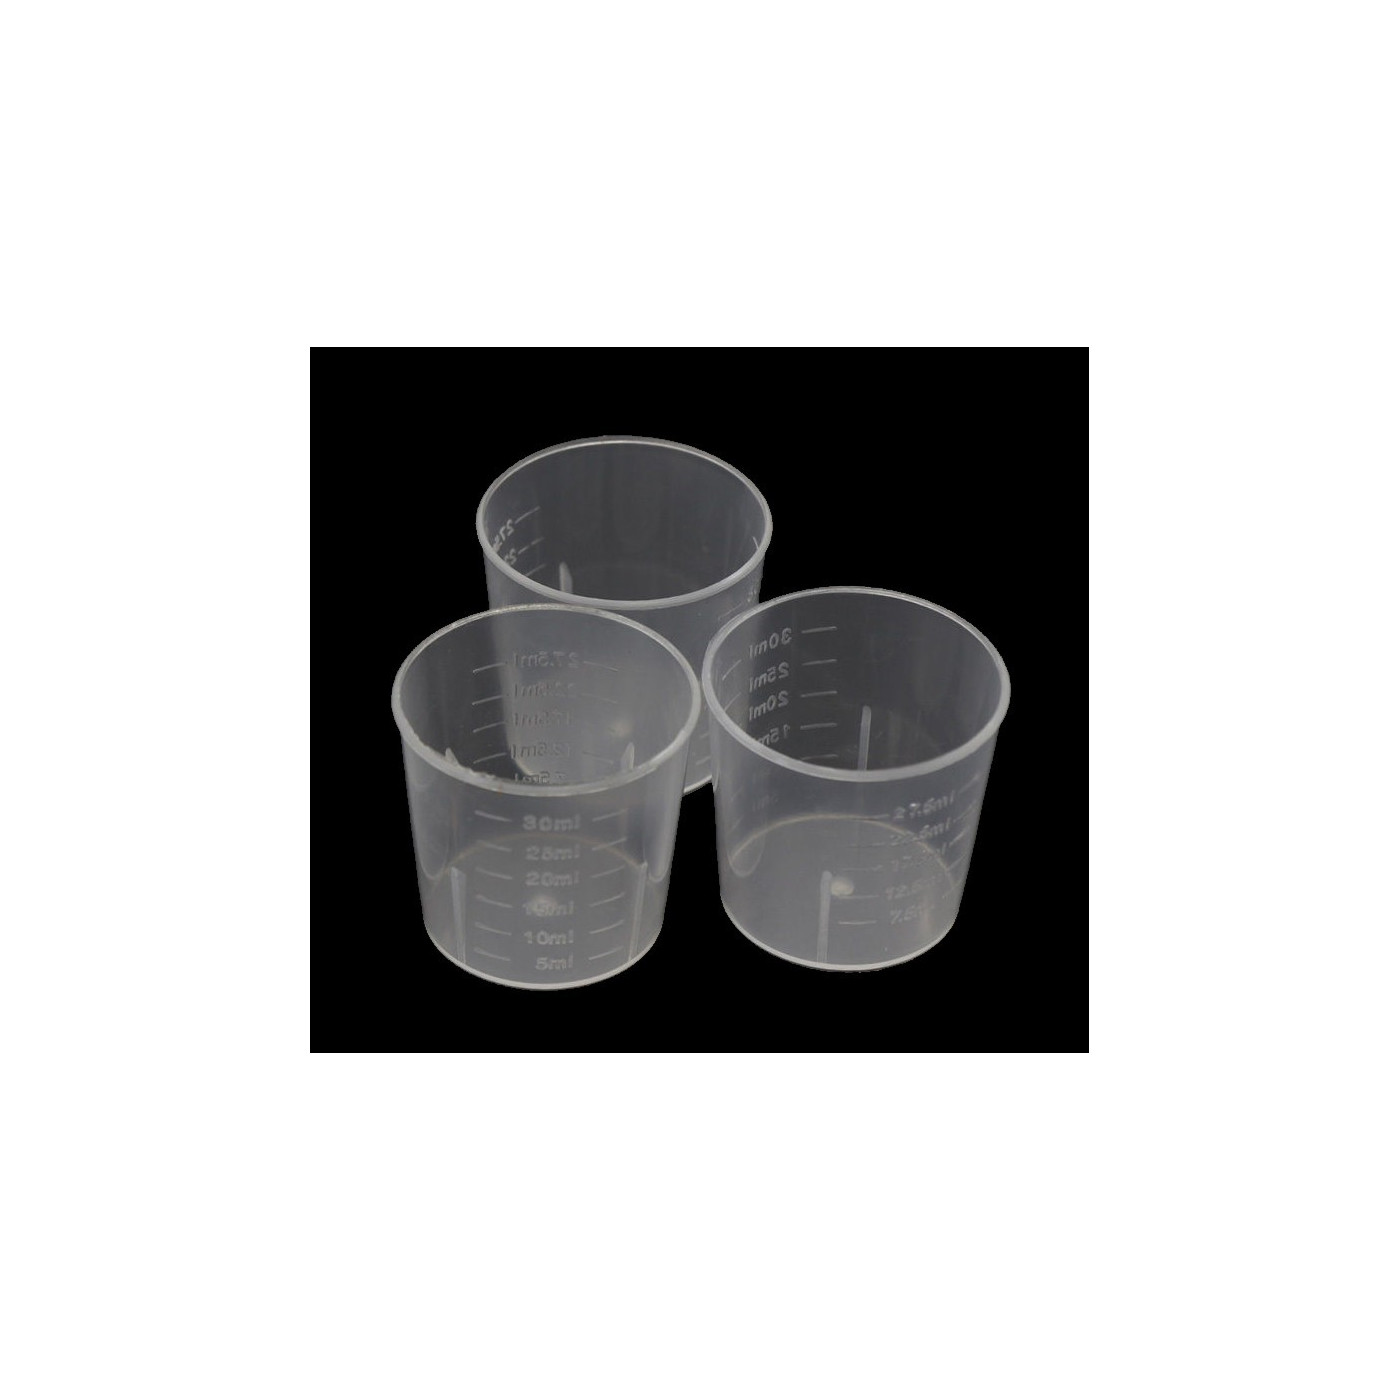 Set of 60 mini plastic measuring cups (30 ml, for frequent use)